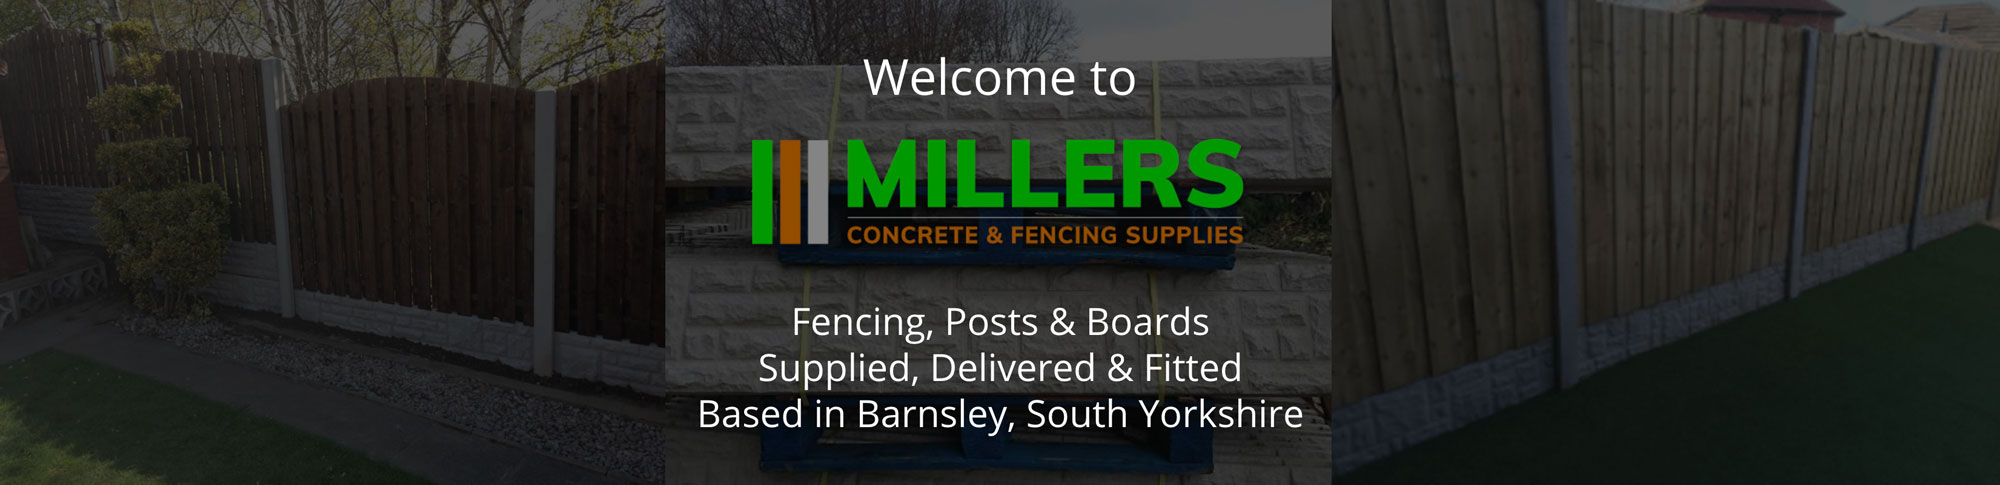 Millers Concrete & Fencing Supplies